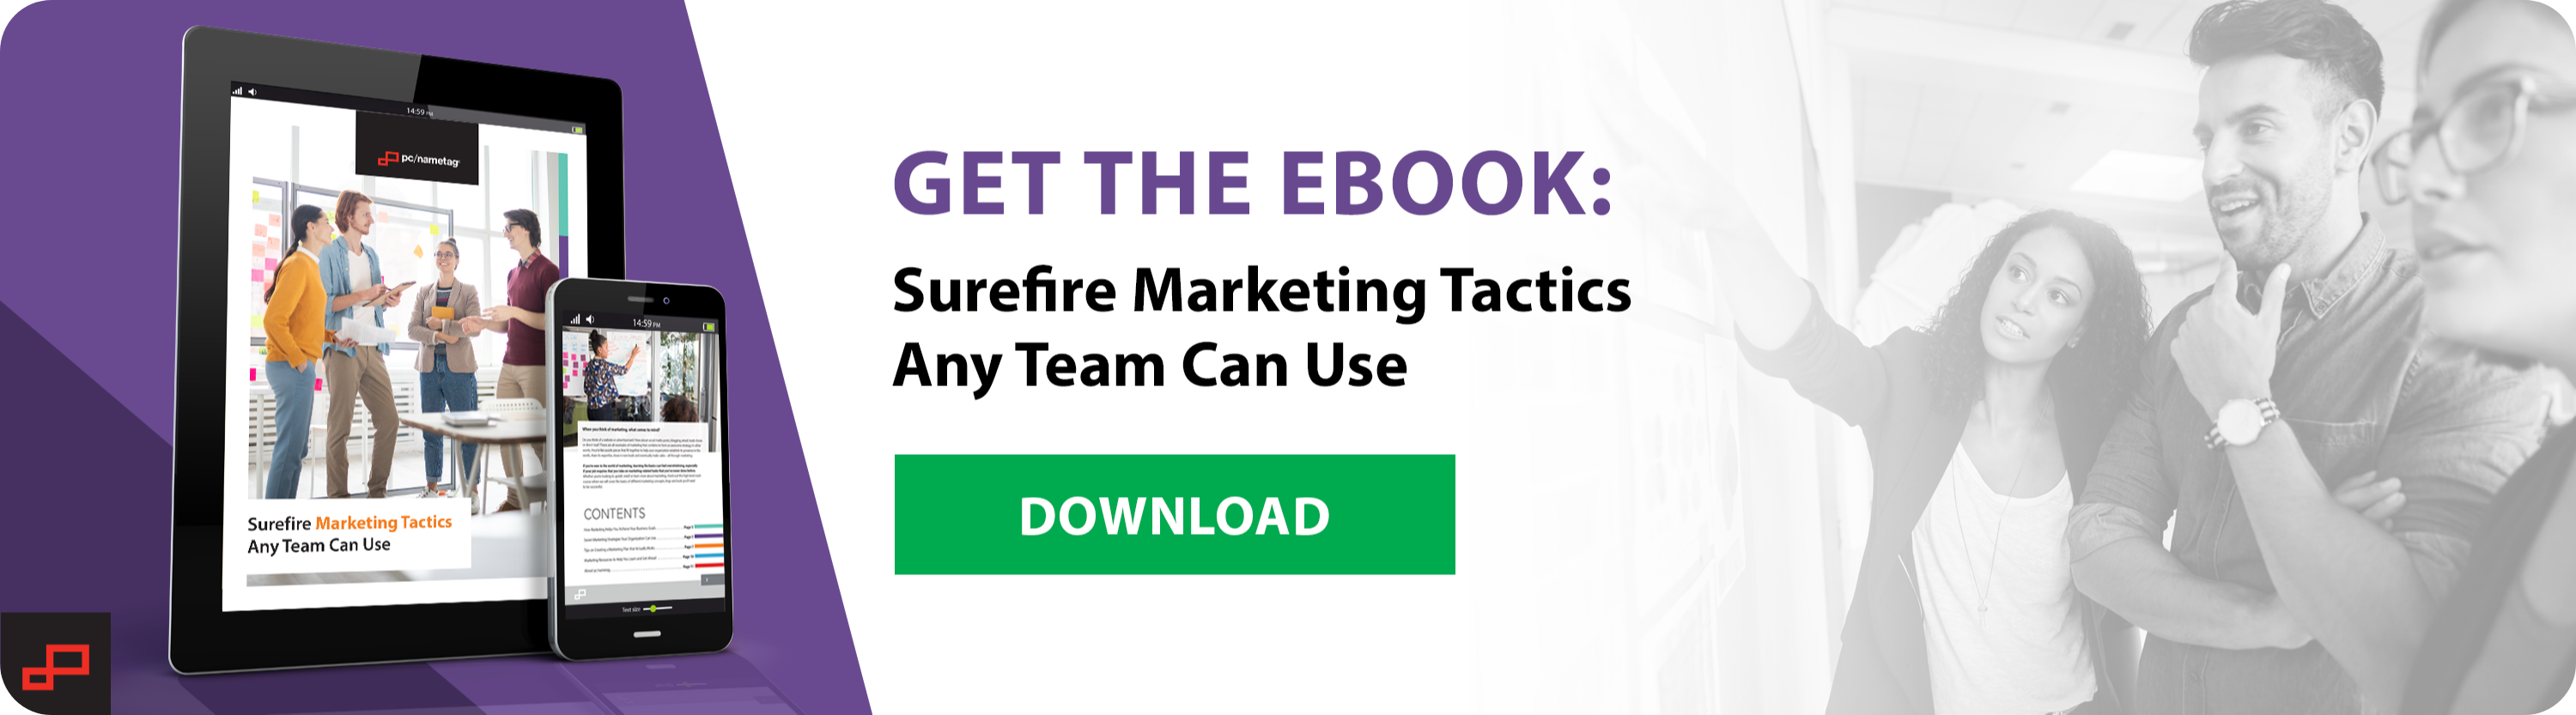 download pc/nametag's ebook - Surefire Marketing Tactics Any Team Can Use